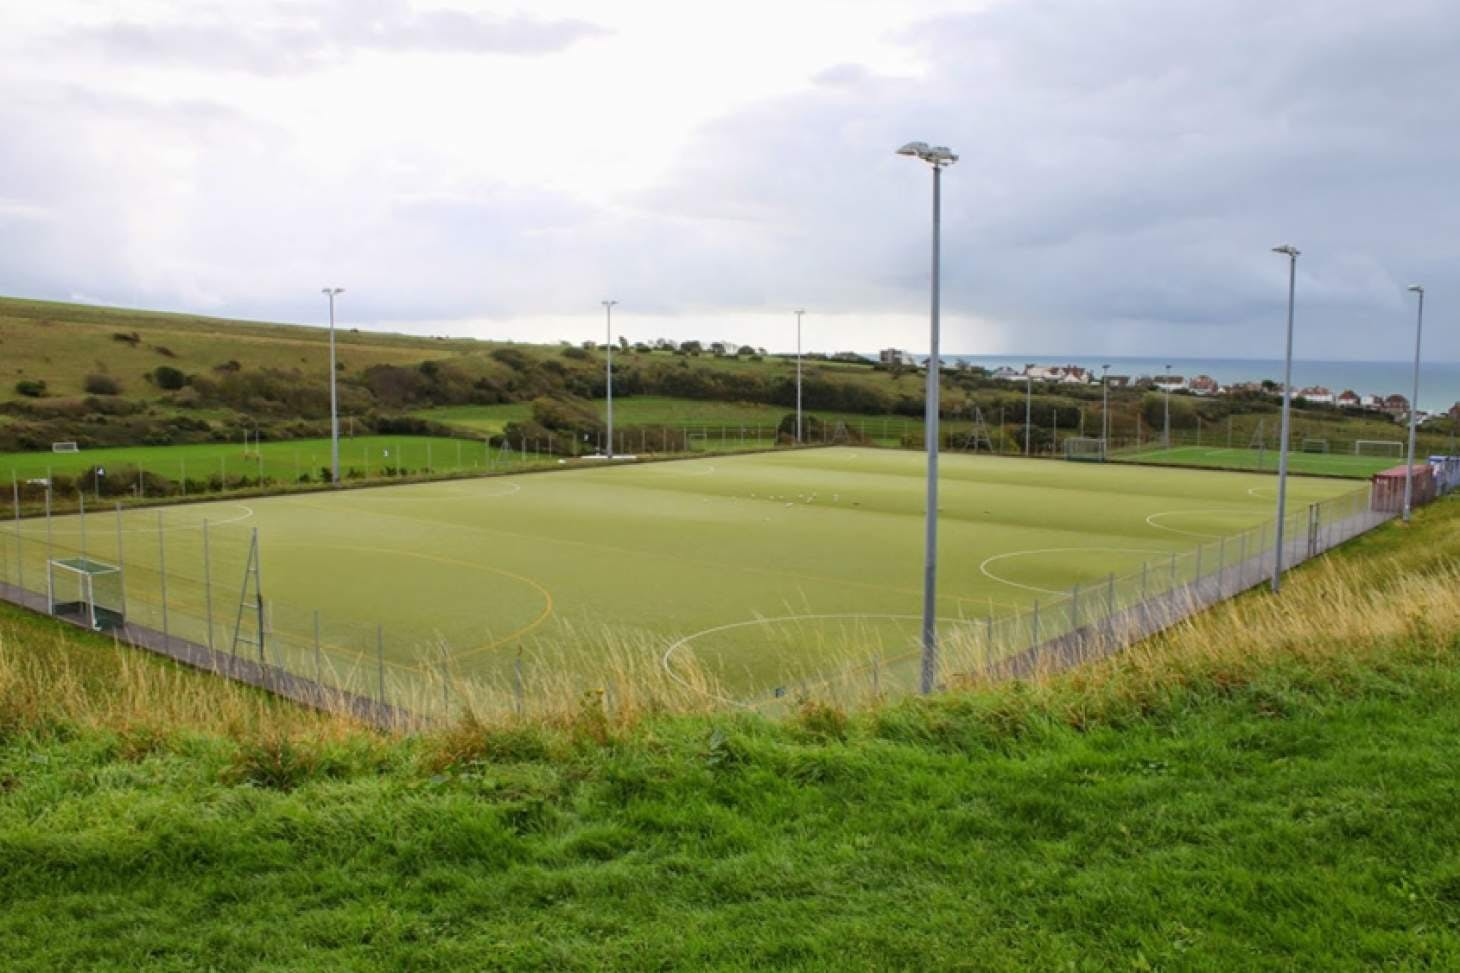 Stanley Deason Leisure Centre 6-a-side pitch | Sand-based Astroturf hockey pitch